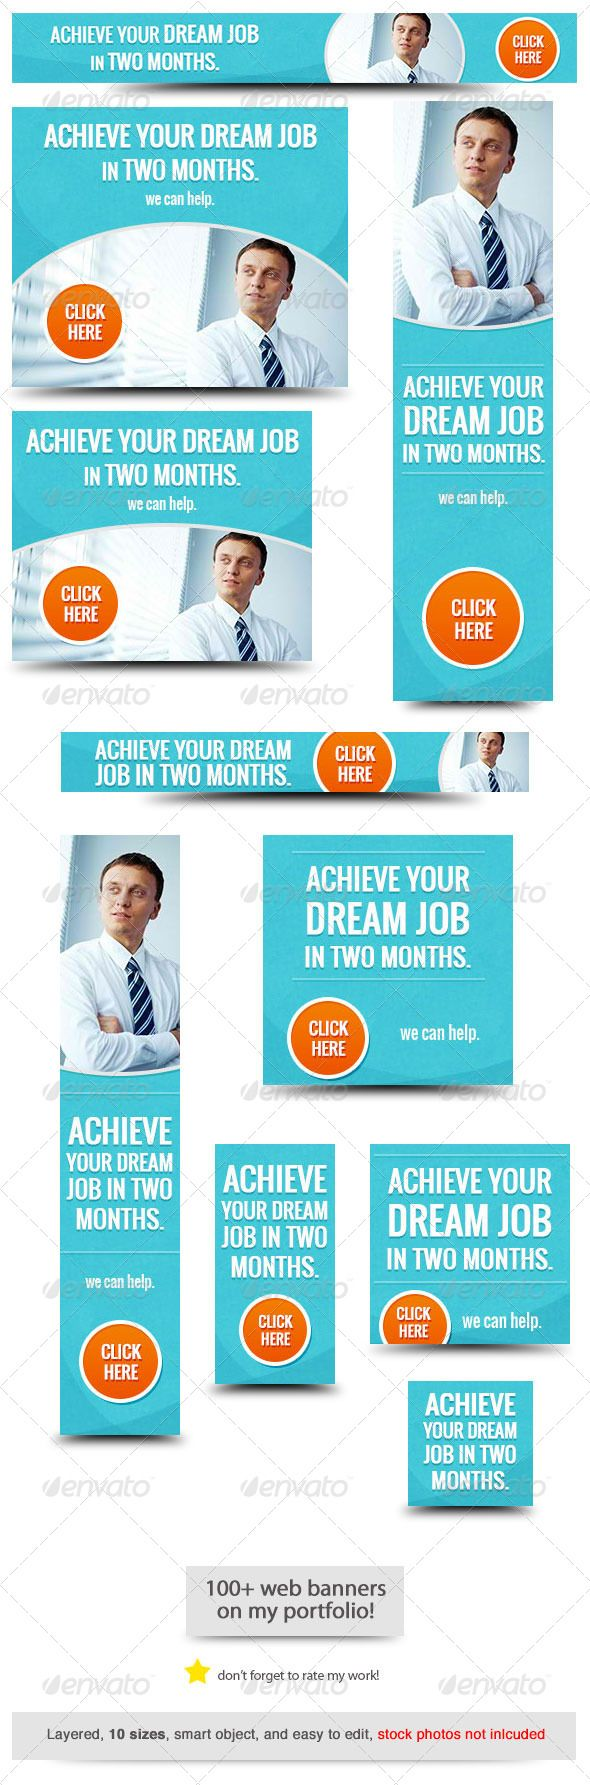 34 best images about banners on pinterest ad design sports banners and banner template